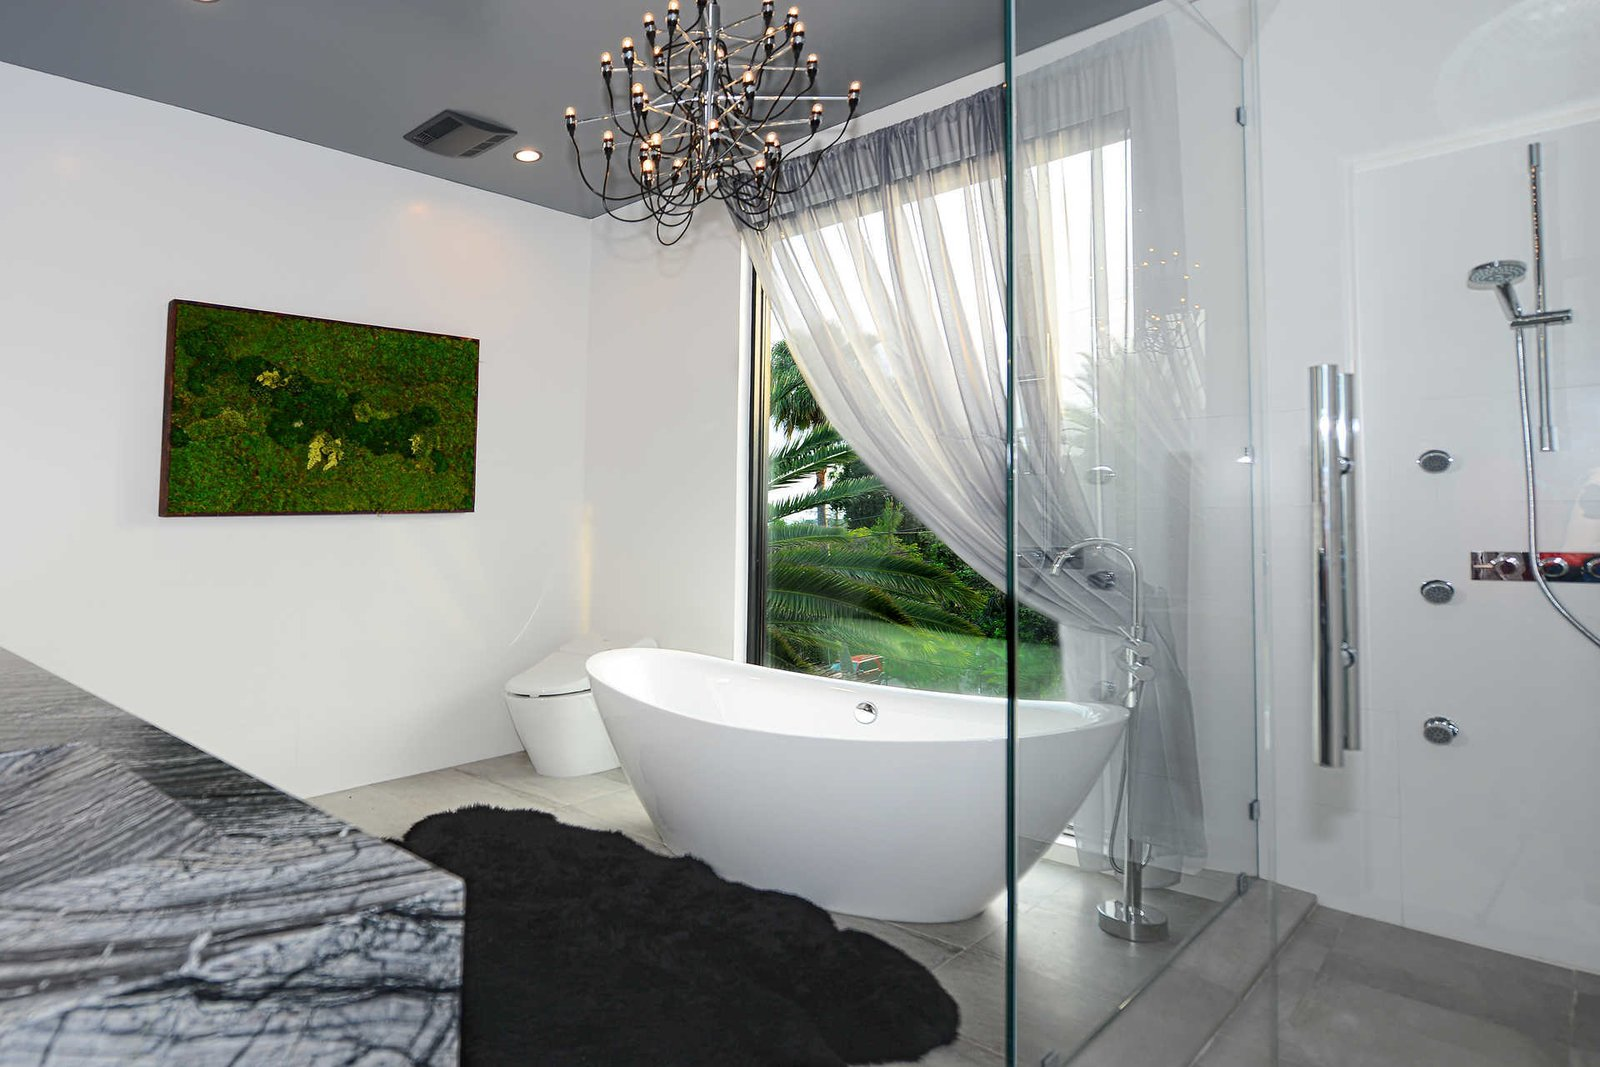 Tagged: Bath Room, Freestanding Tub, Soaking Tub, Enclosed Shower, and Corner Shower.  Italian Modernist Home